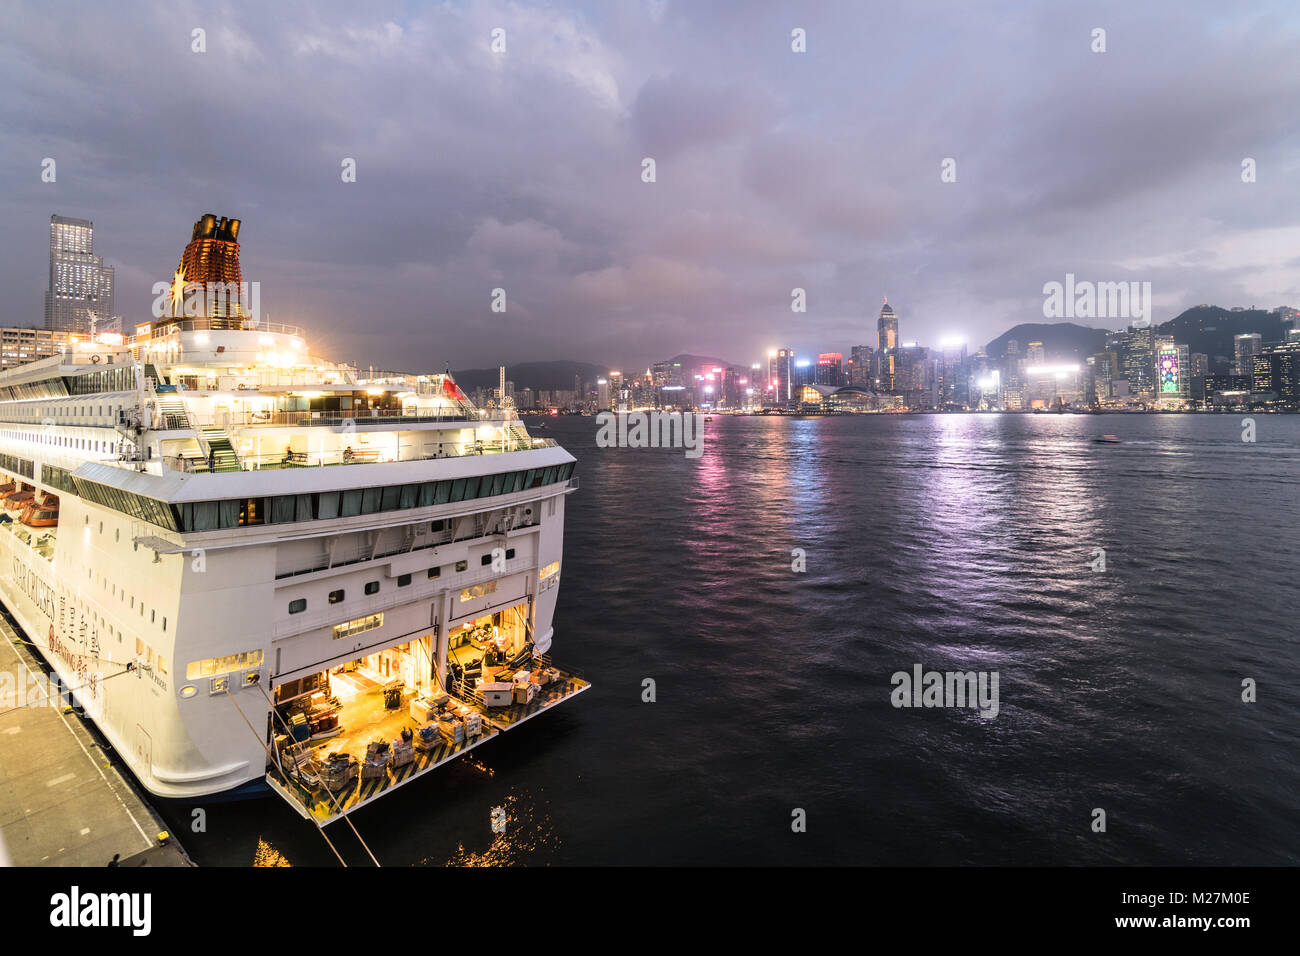 Hong Kong - January 25 2018: A large cruise ship anchored at the Ocean cruise terminal in Kowloon wiht the Hong - Stock Image